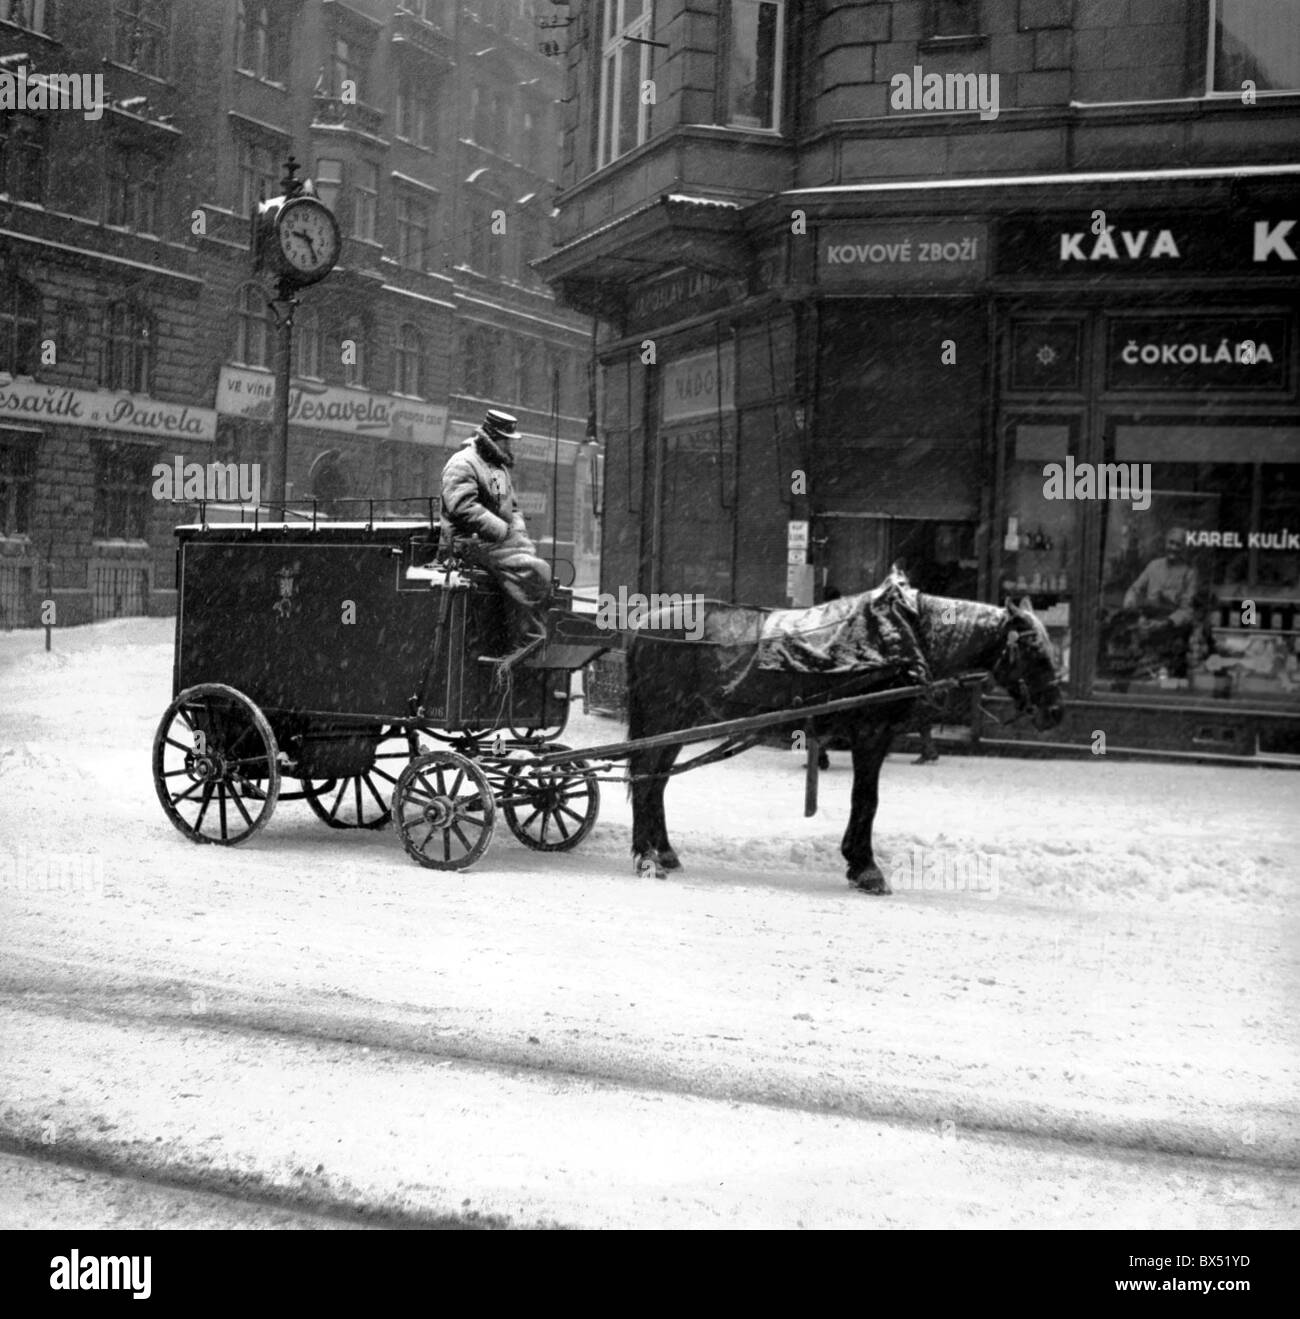 Prague 1937, postal carrier distributes mail in snow covered Prague, horse drawn carriage, fighting weather. - Stock Image